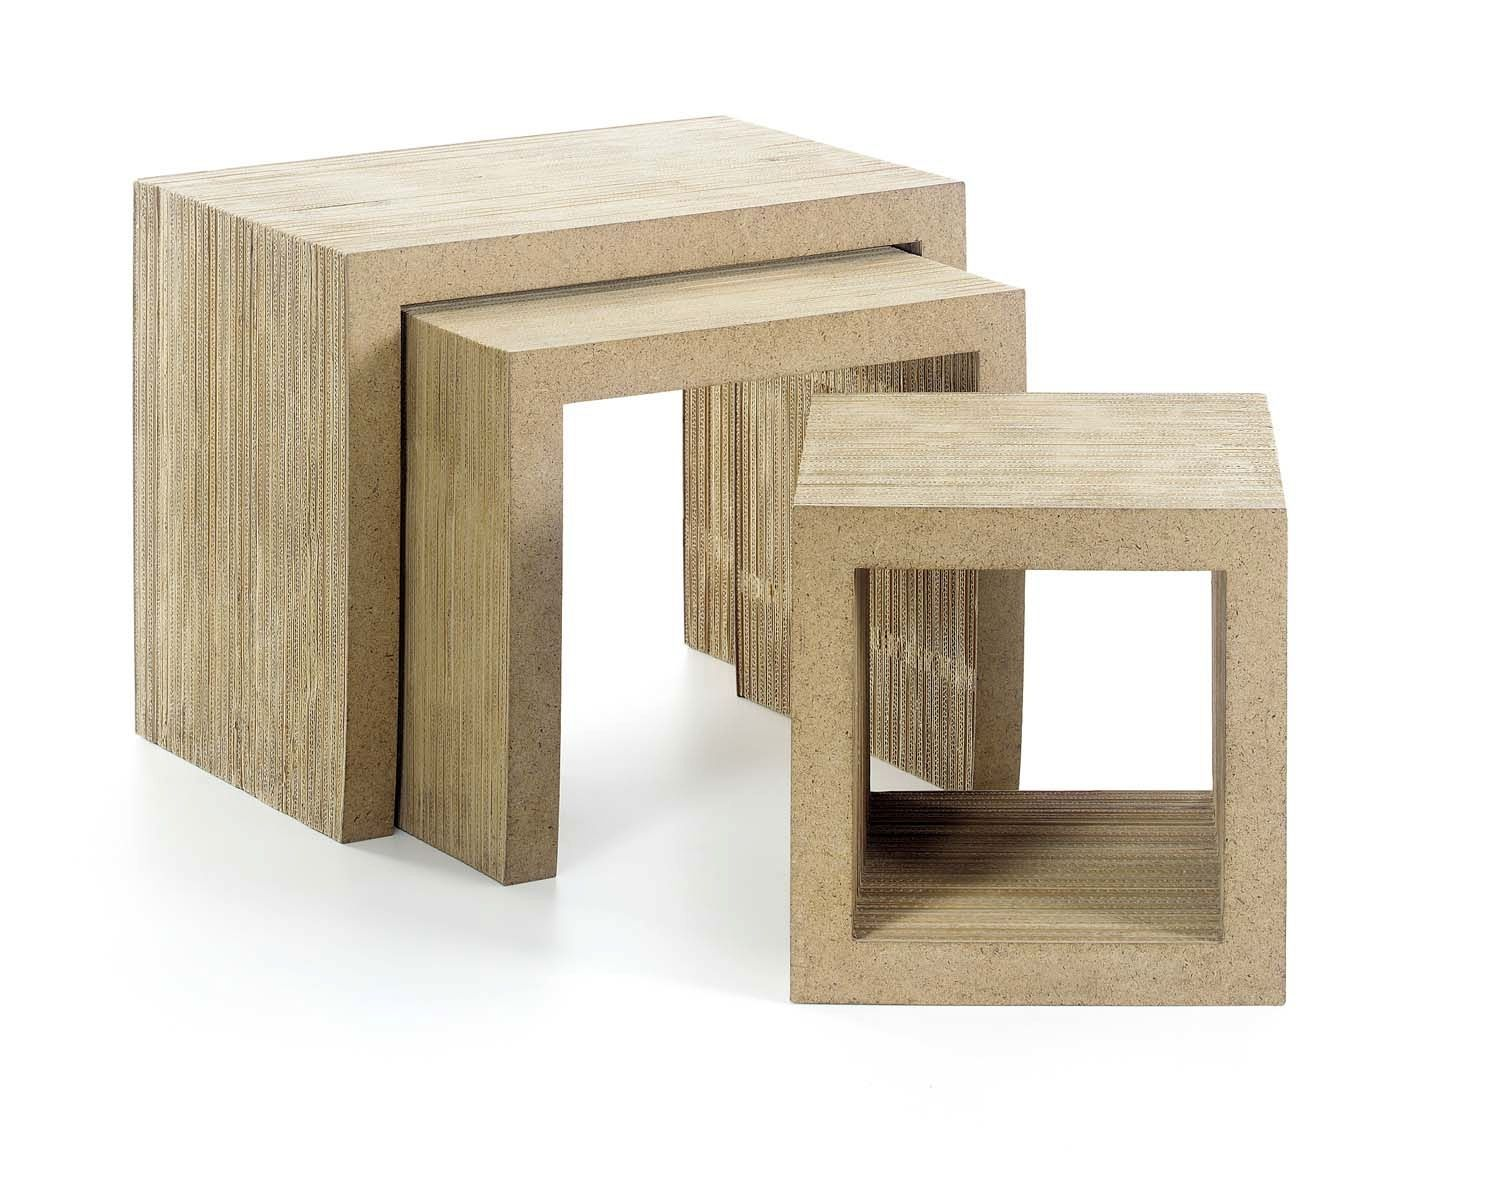 Frank Gehry Is Well Known For His Use Of Unusual Materials With  # Frank Gehry Muebles De Carton